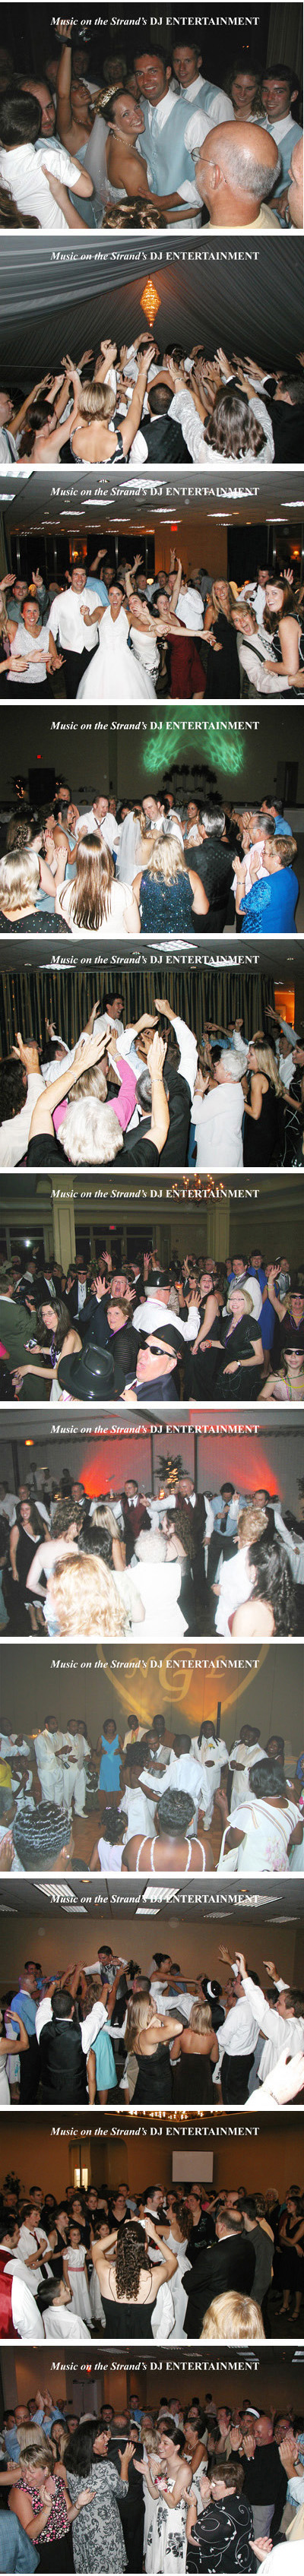 Myrtle Beach DJs staging entertaining memorable moments